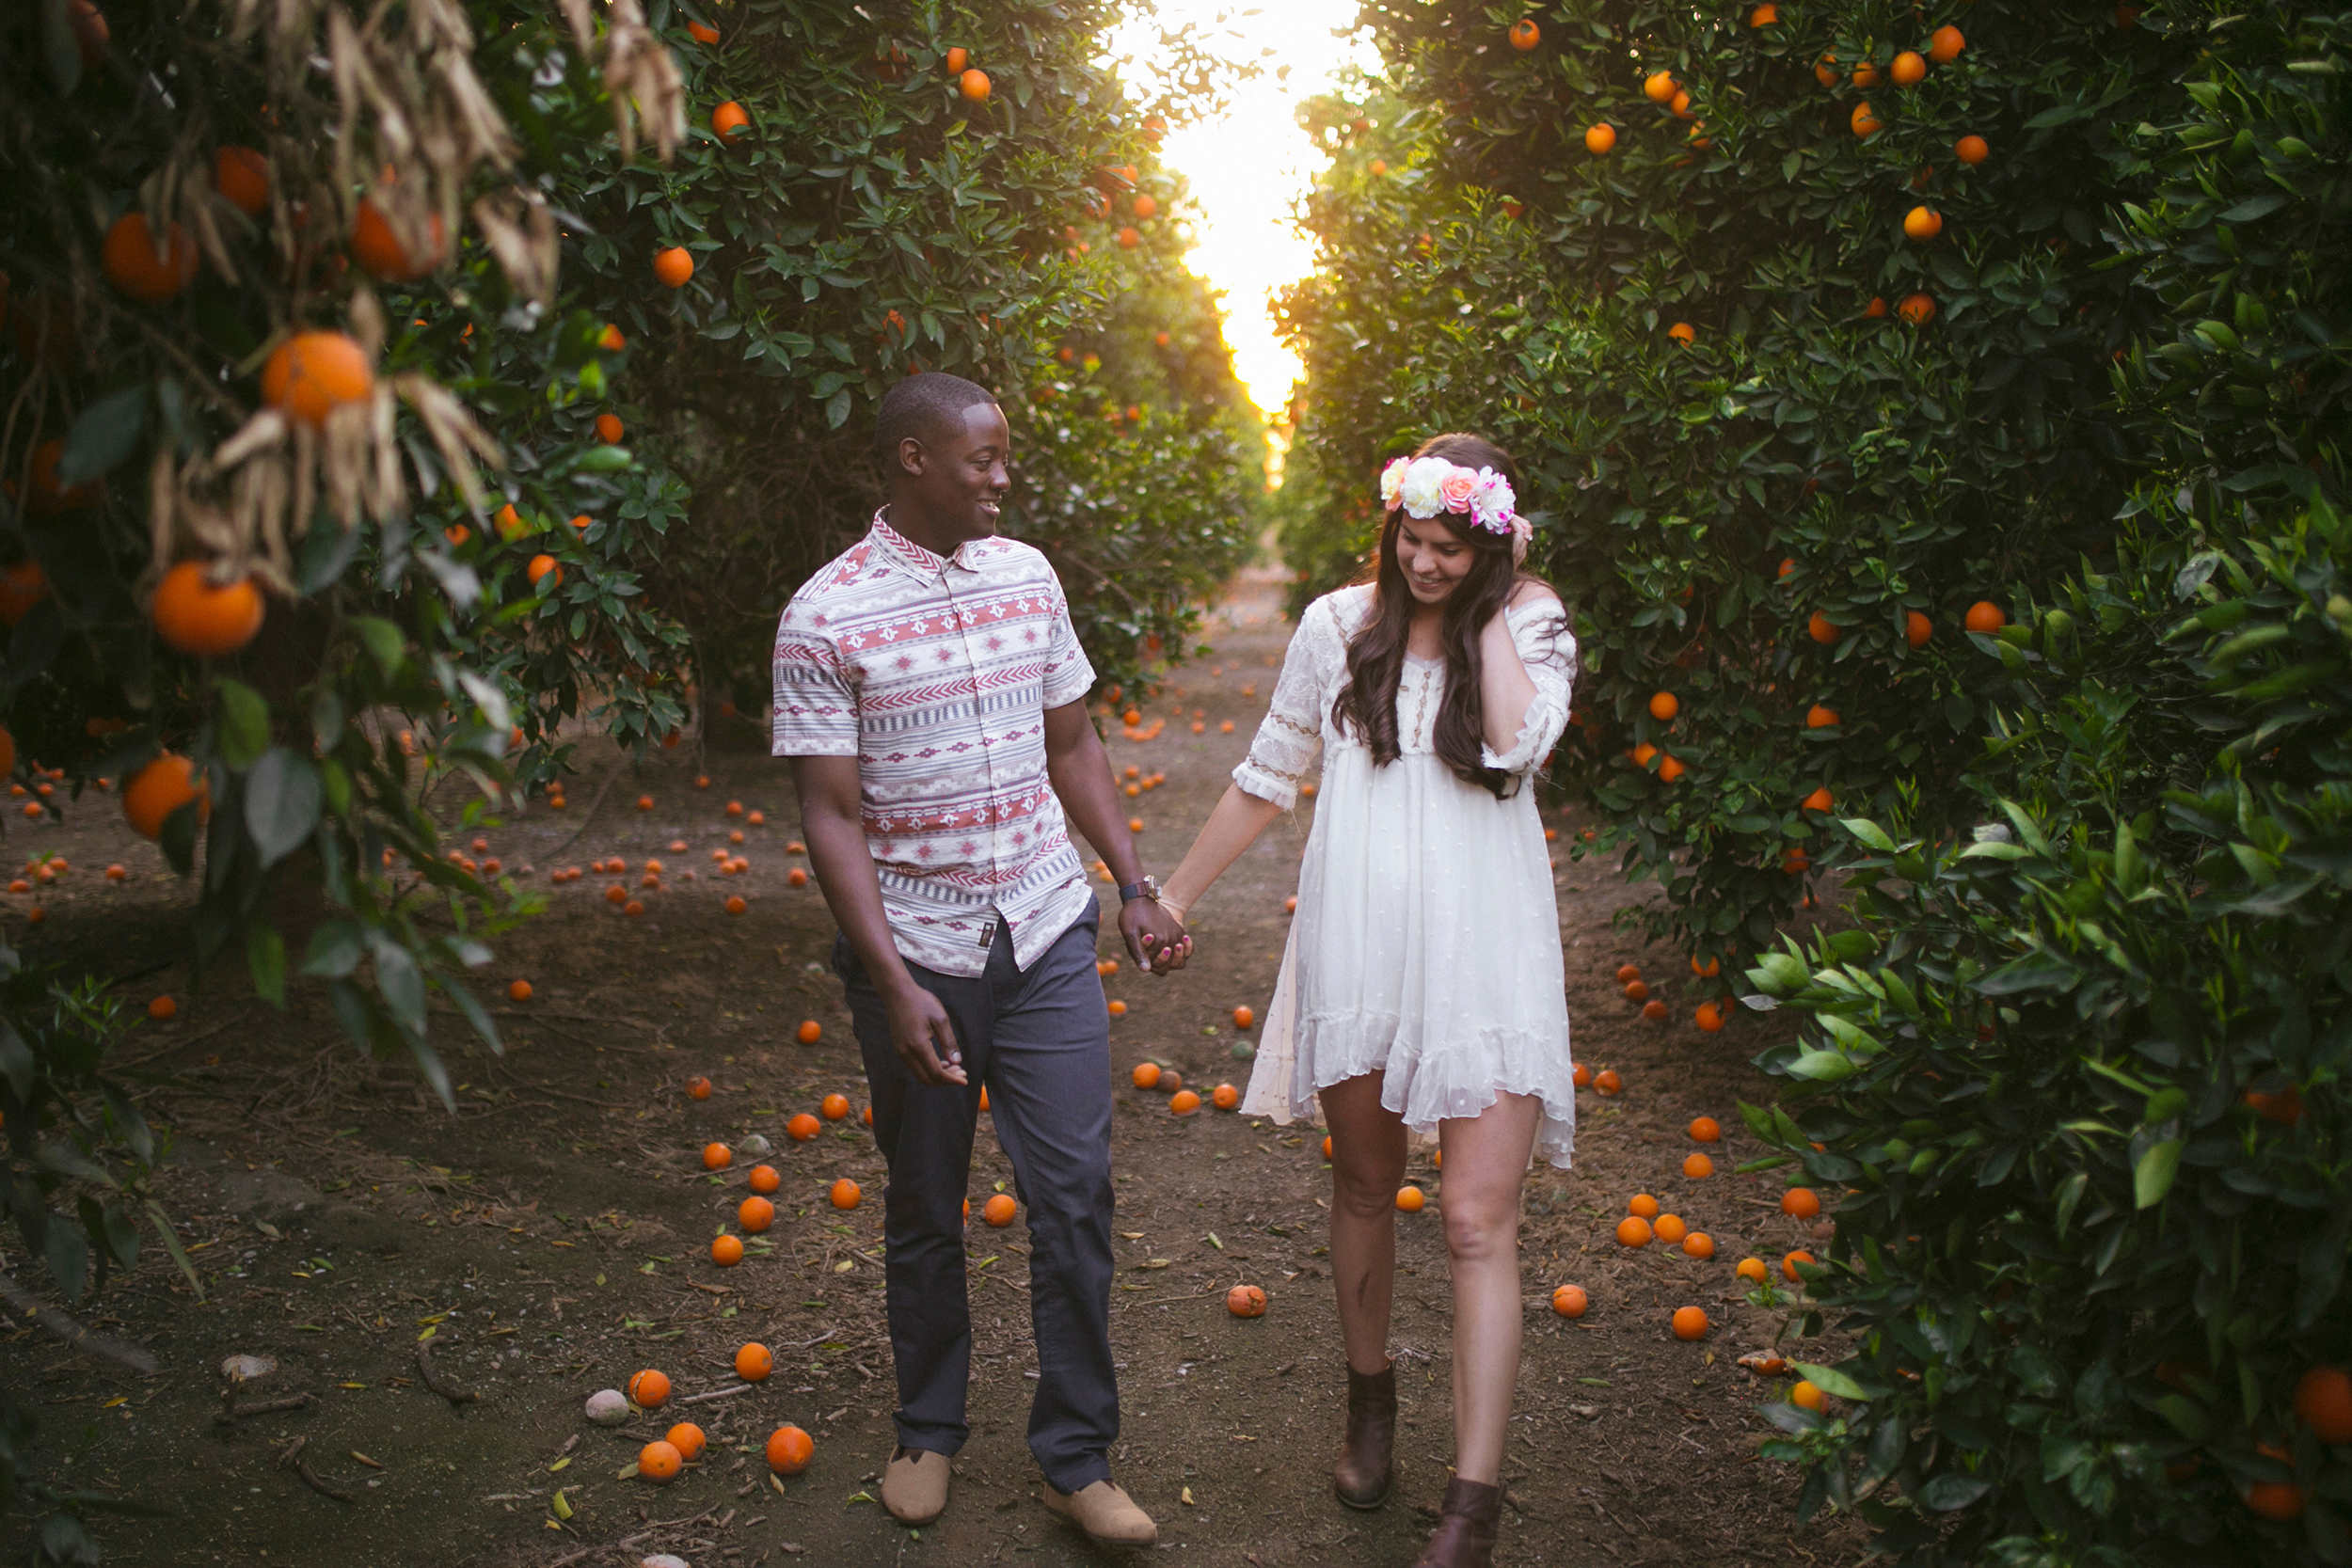 Colby-and-Jess-Adventure-Engagement-Photography-Orange-Grove-San-Bernardino-California301.jpg